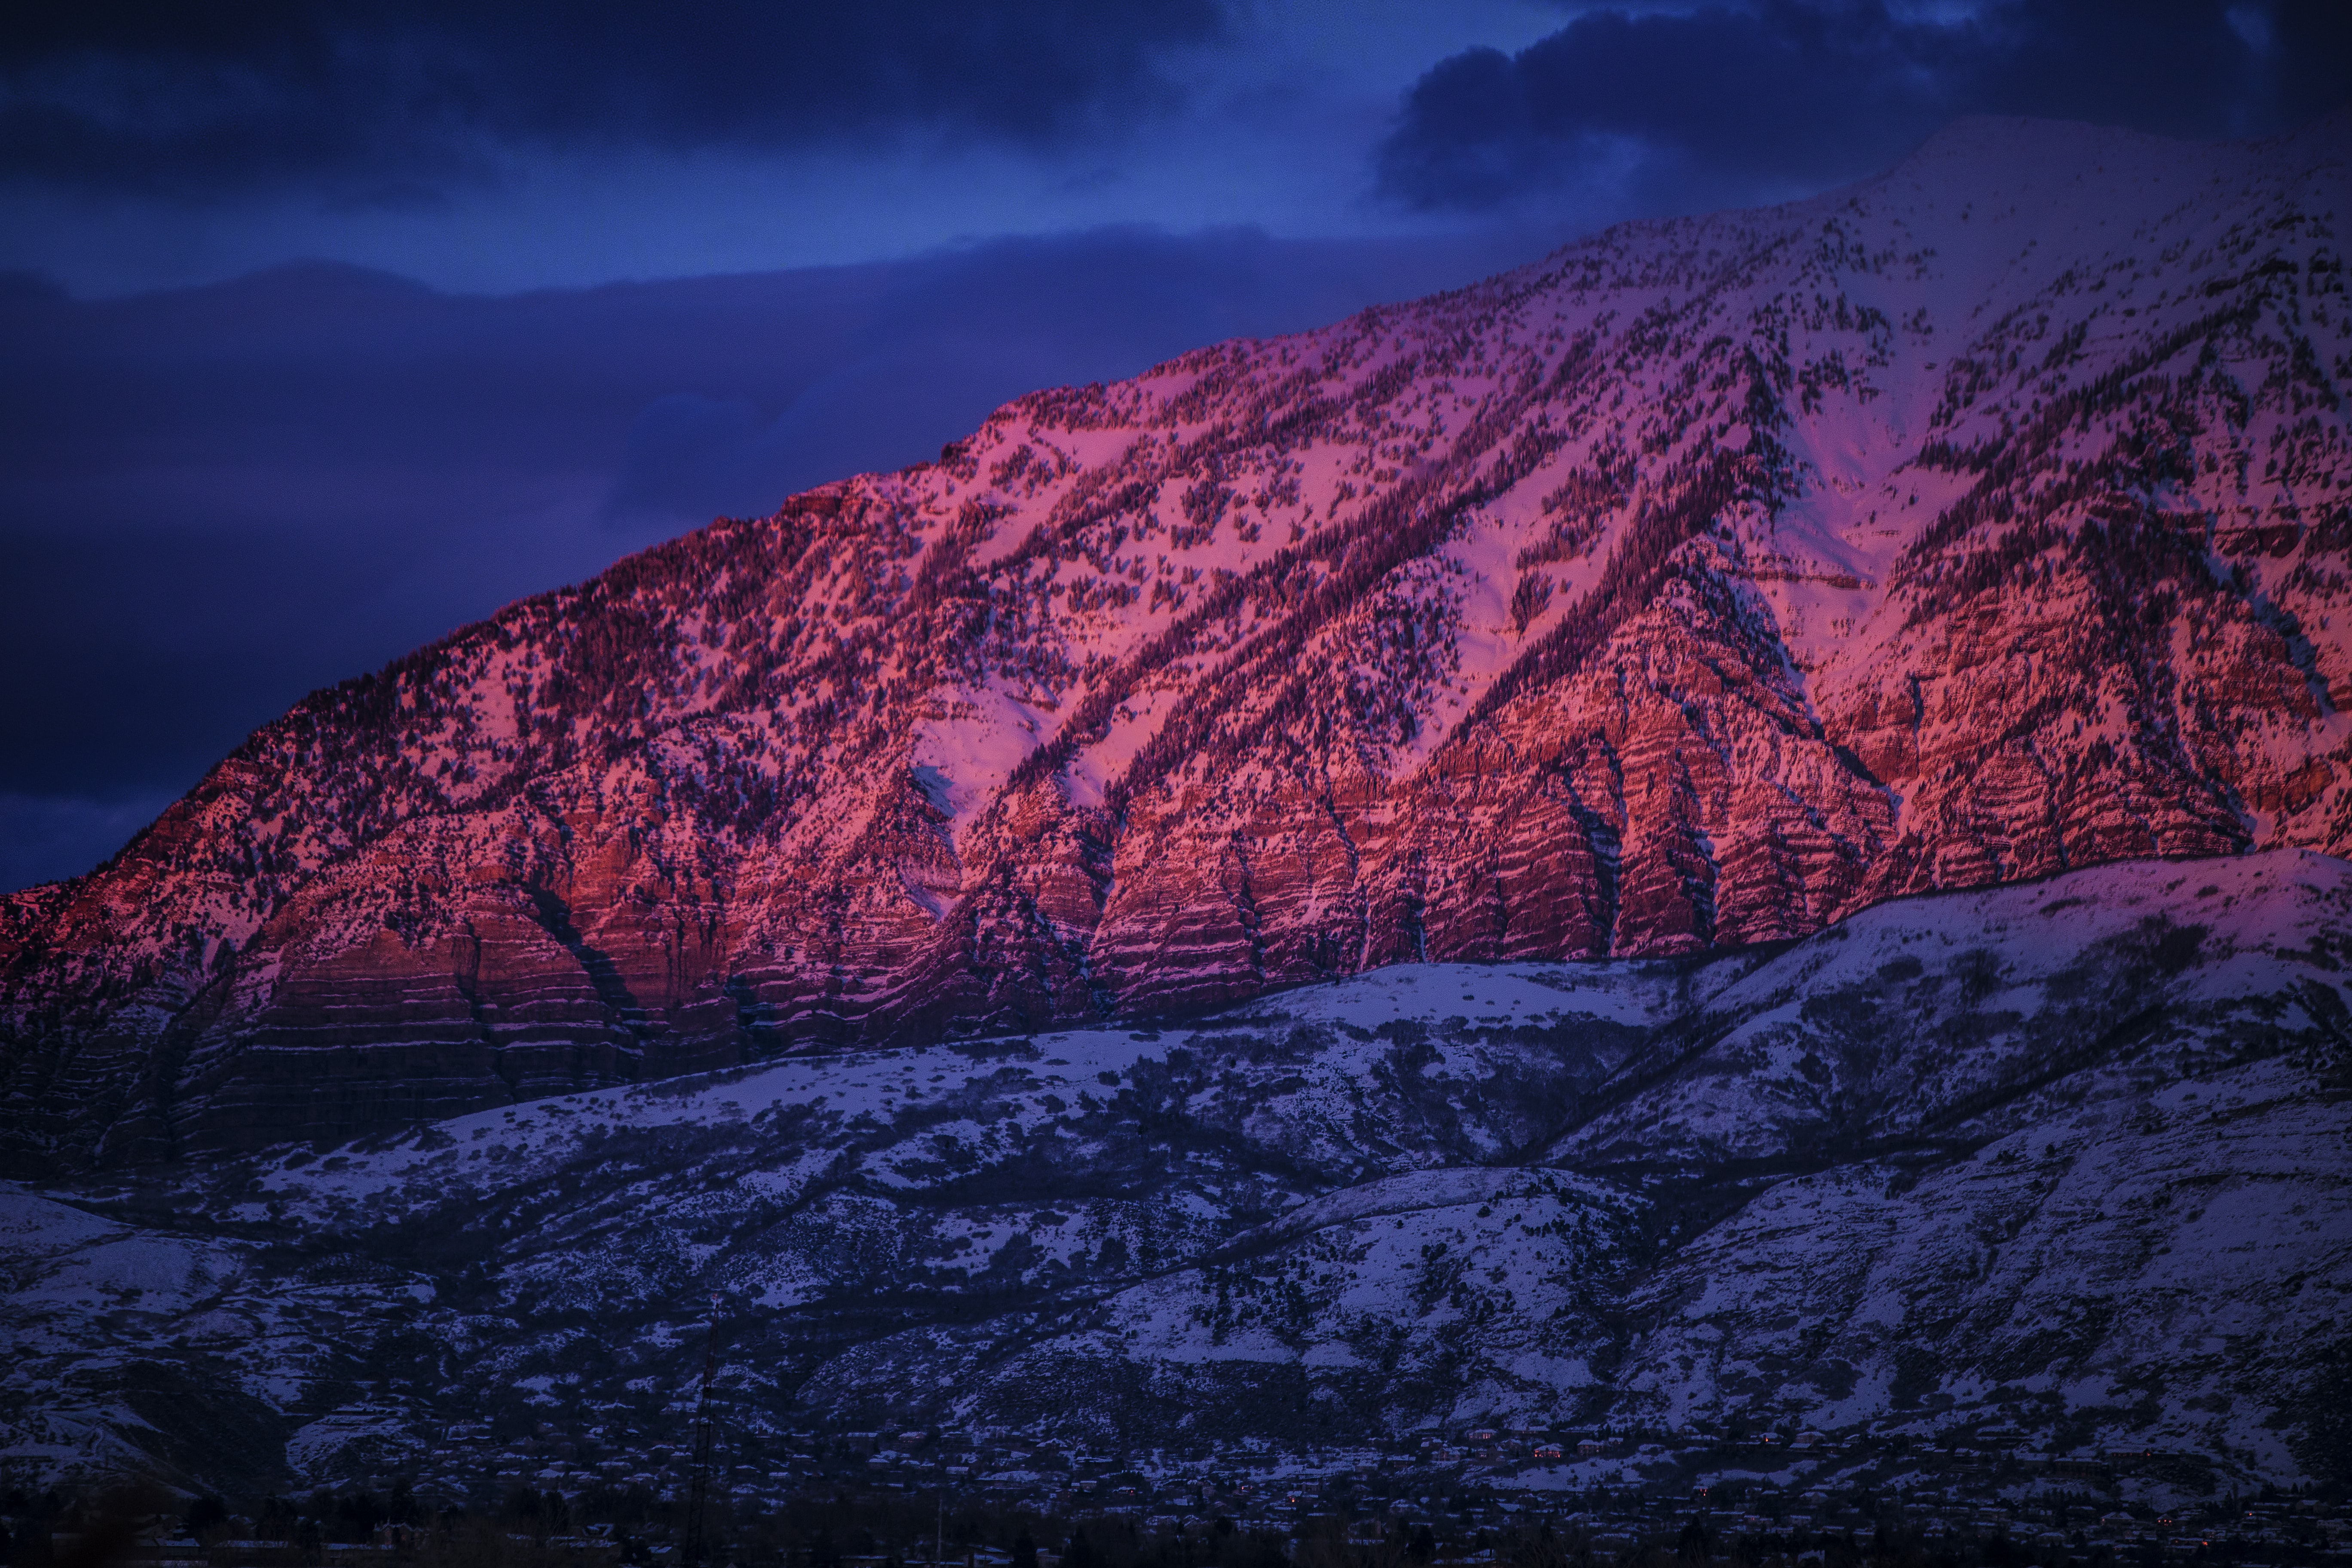 Red-hued sunlight falls on a snowy mountain slope in Provo during sunset